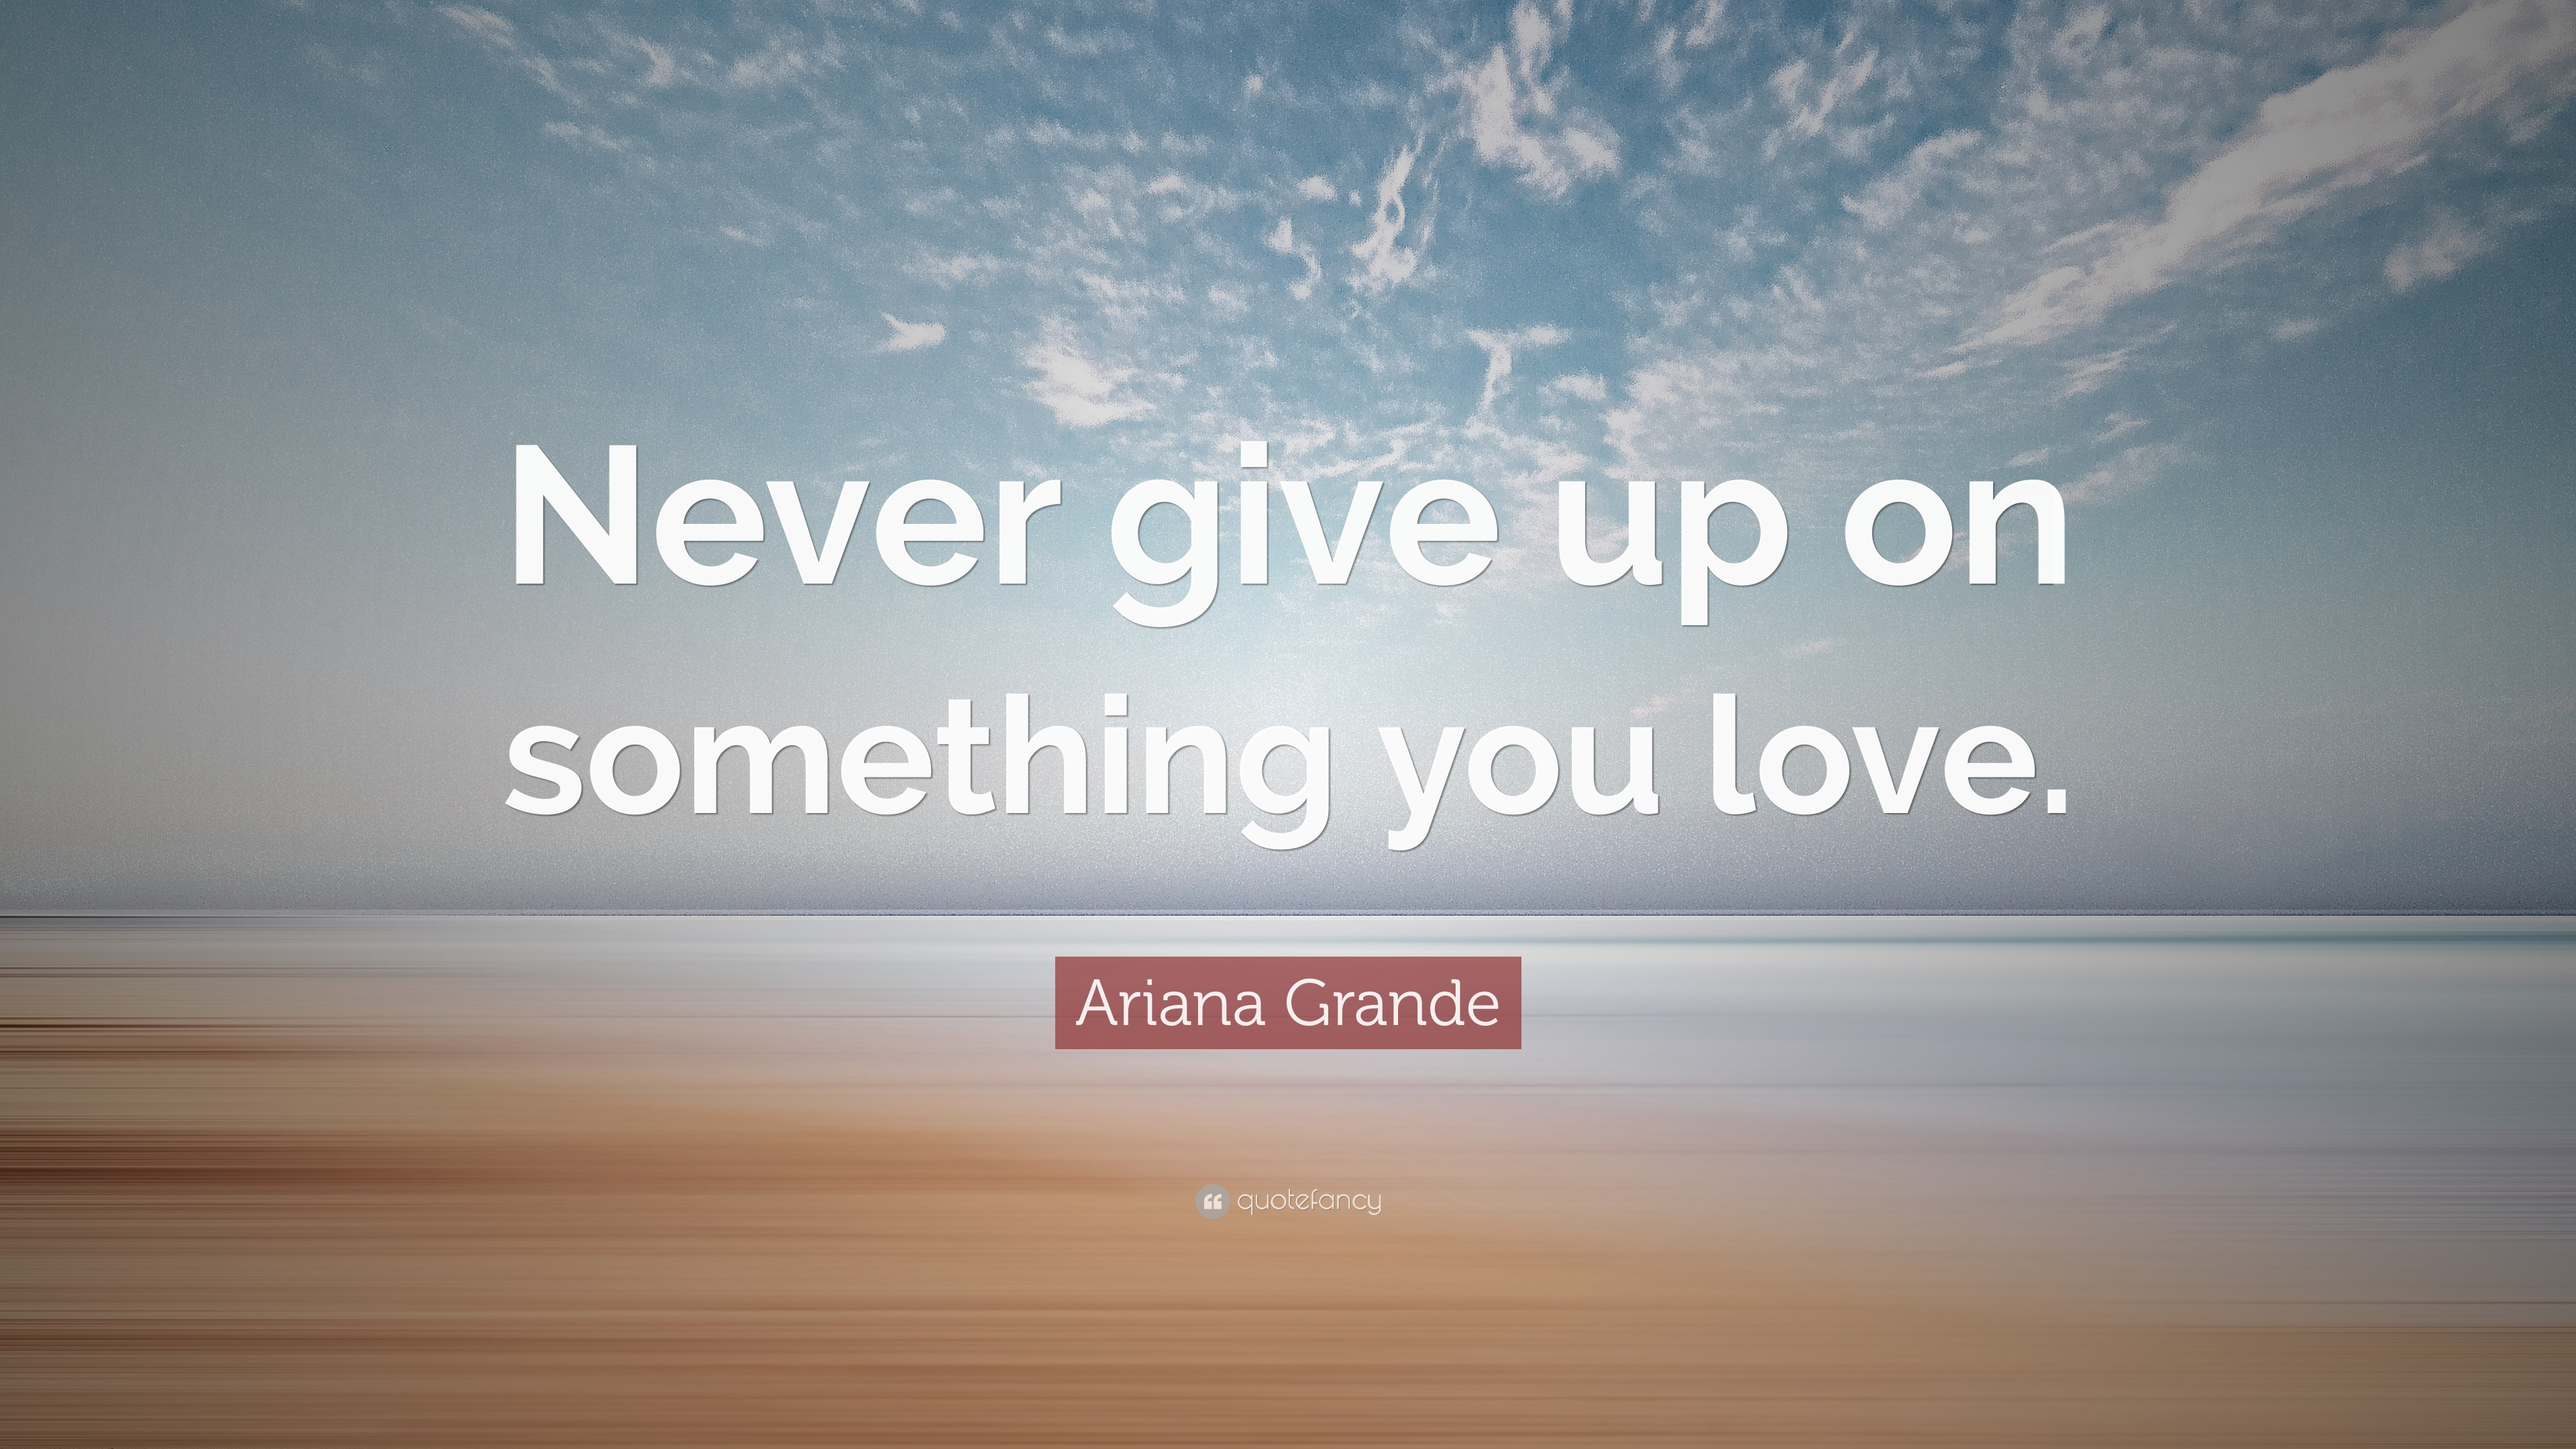 Ariana Grande Quote: Never give up on something you love.